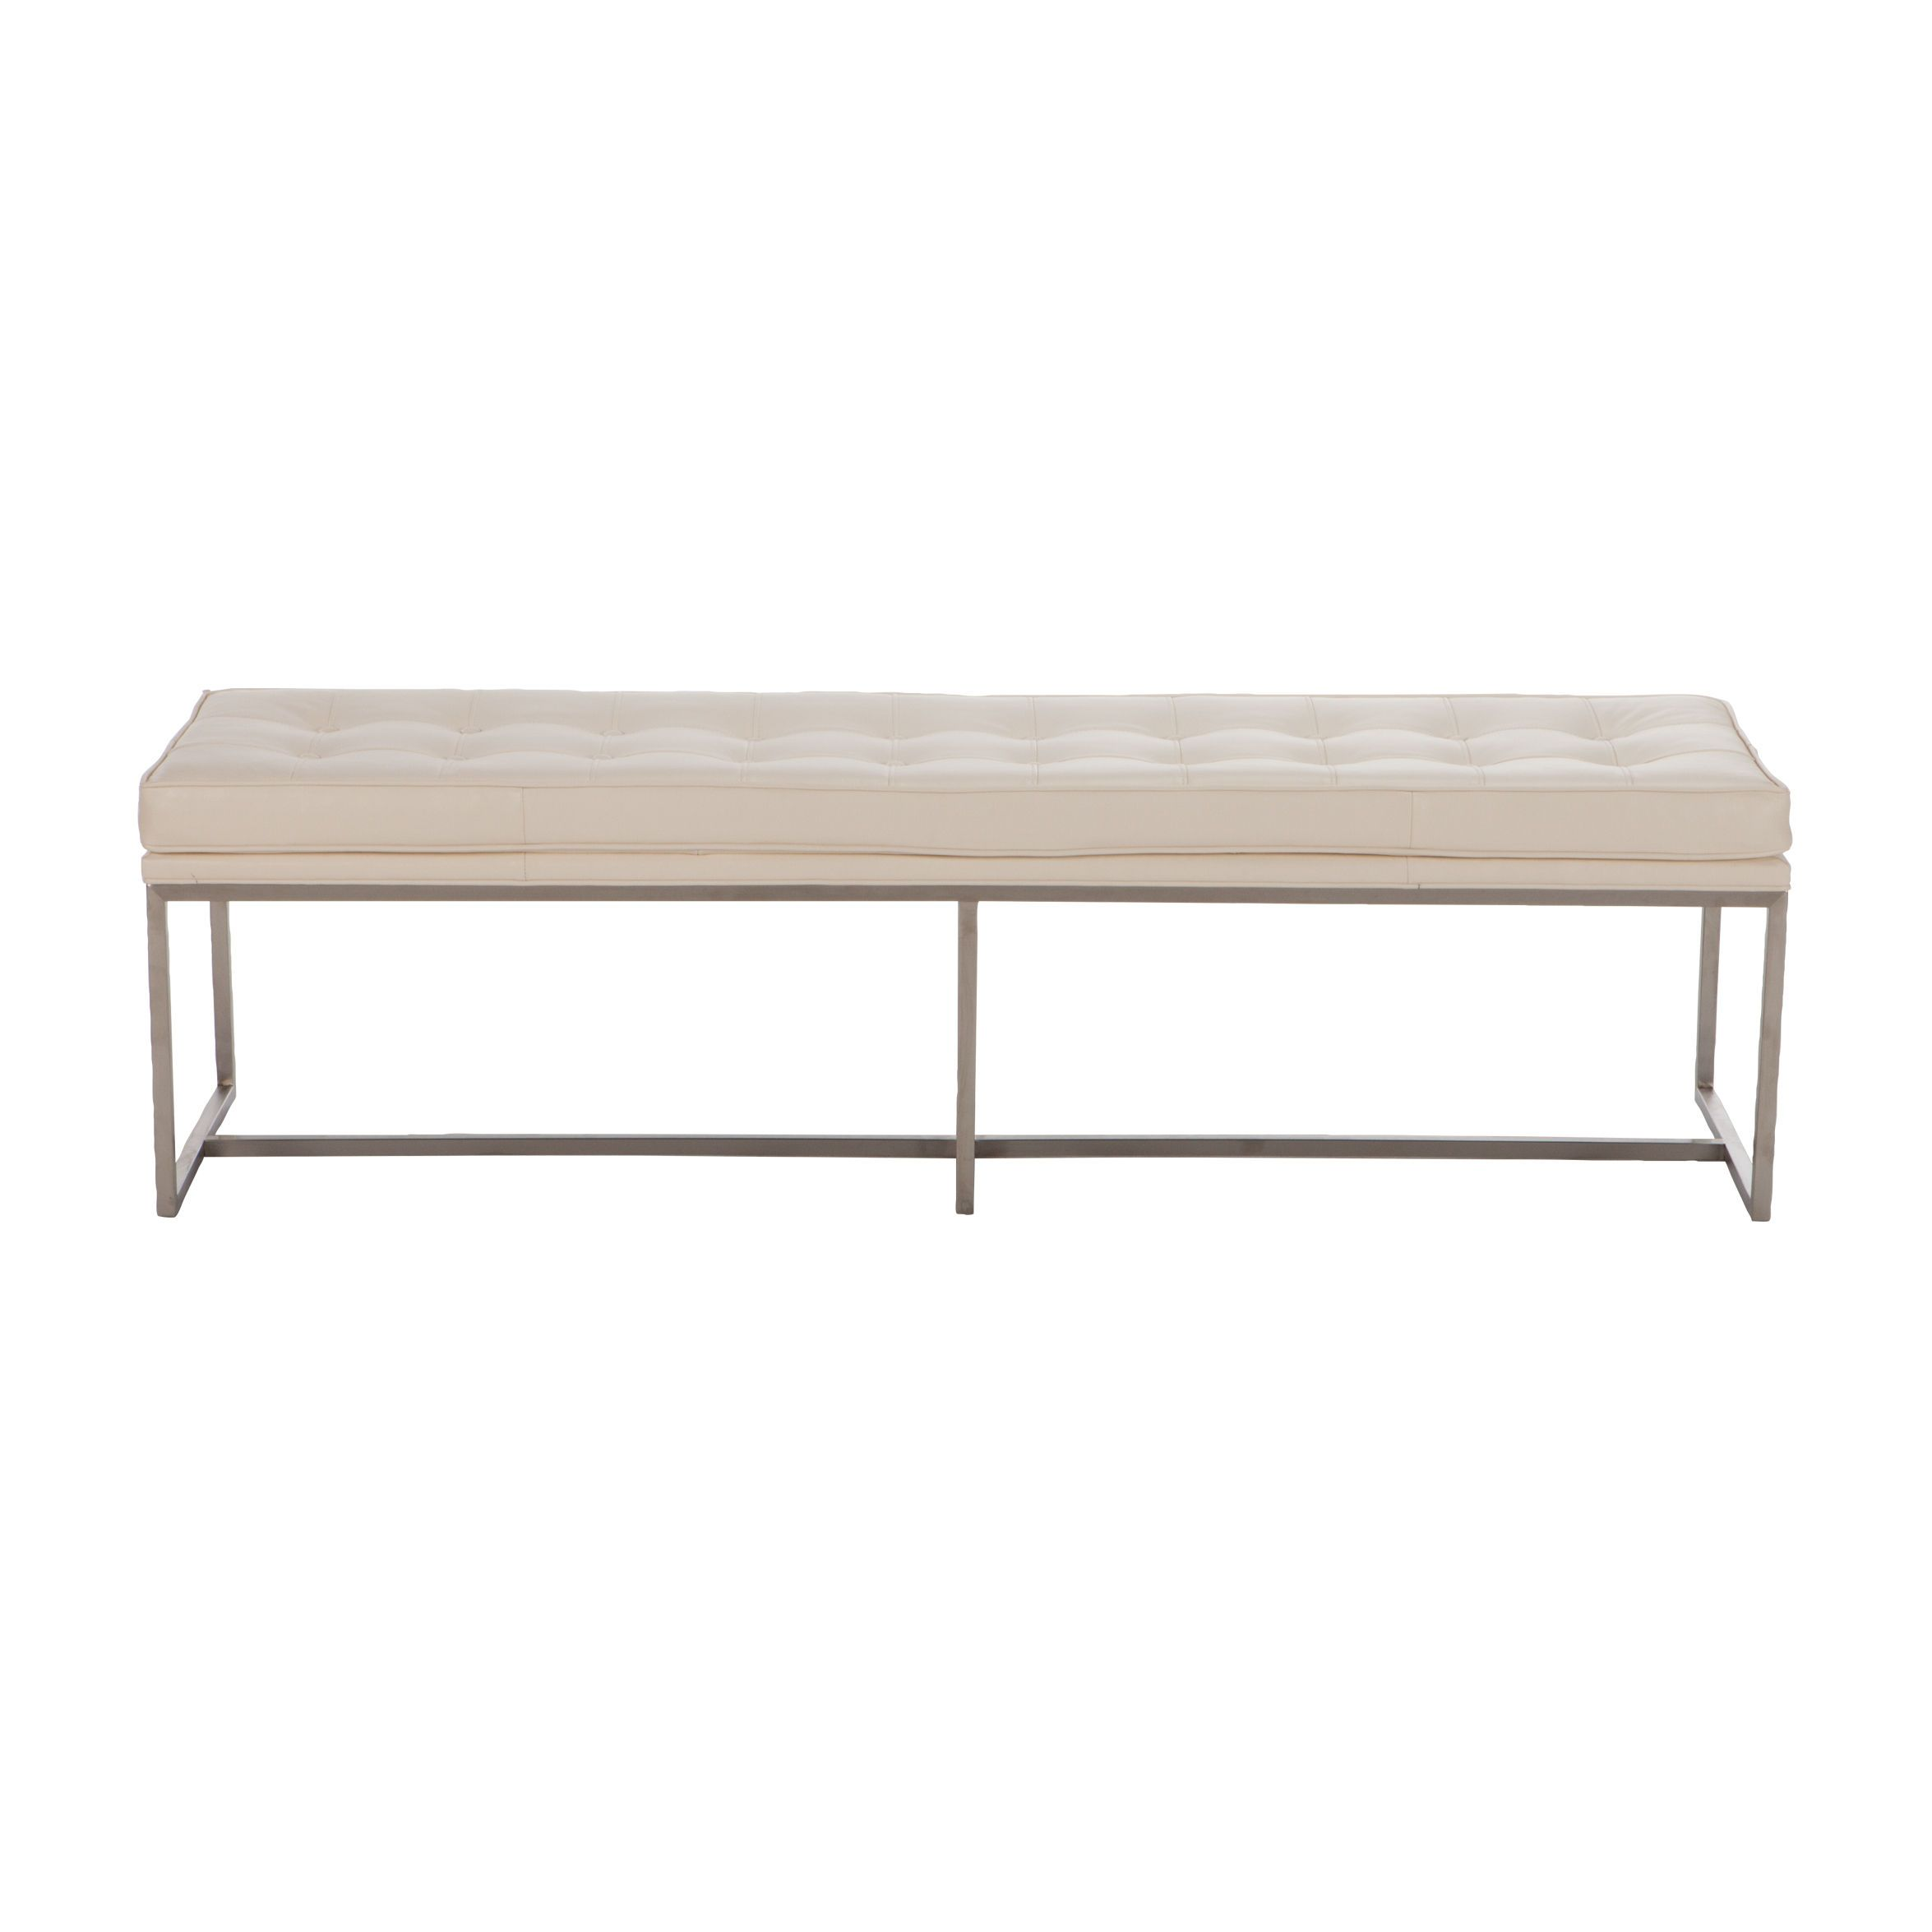 Ethan Allen Tufted Coffee Table: Matteo Leather Benches - Ethan Allen US